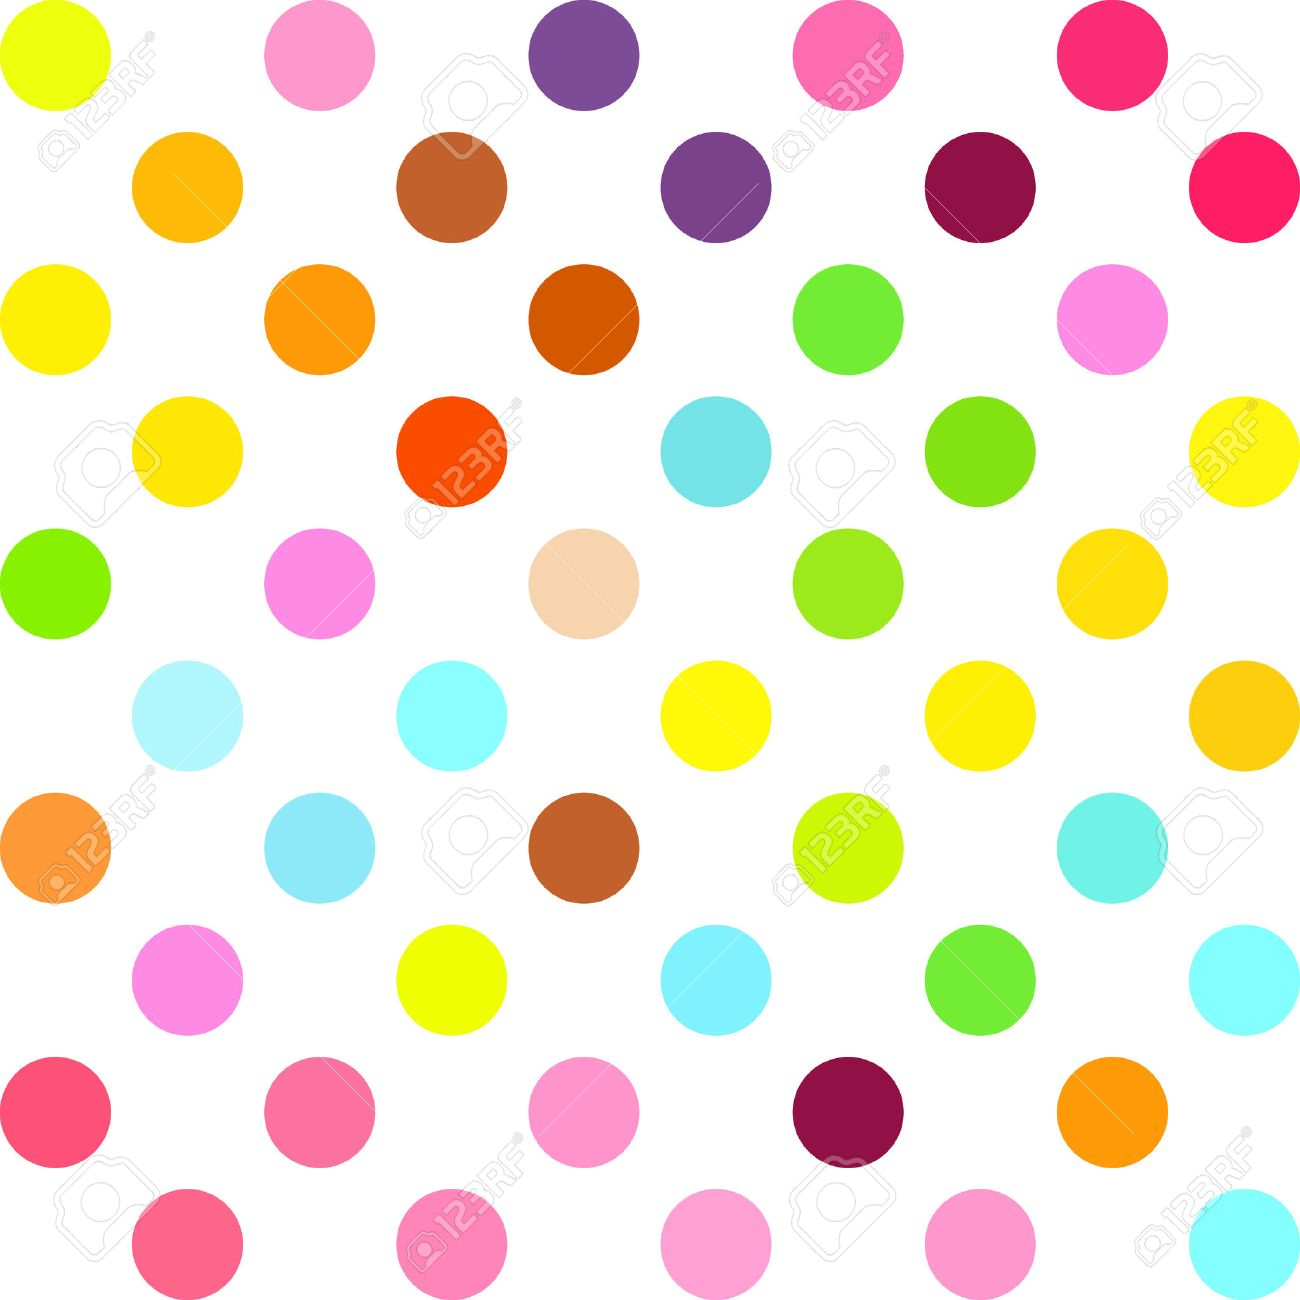 Colorful Polka Dots Background, Creative Design Templates Royalty ...